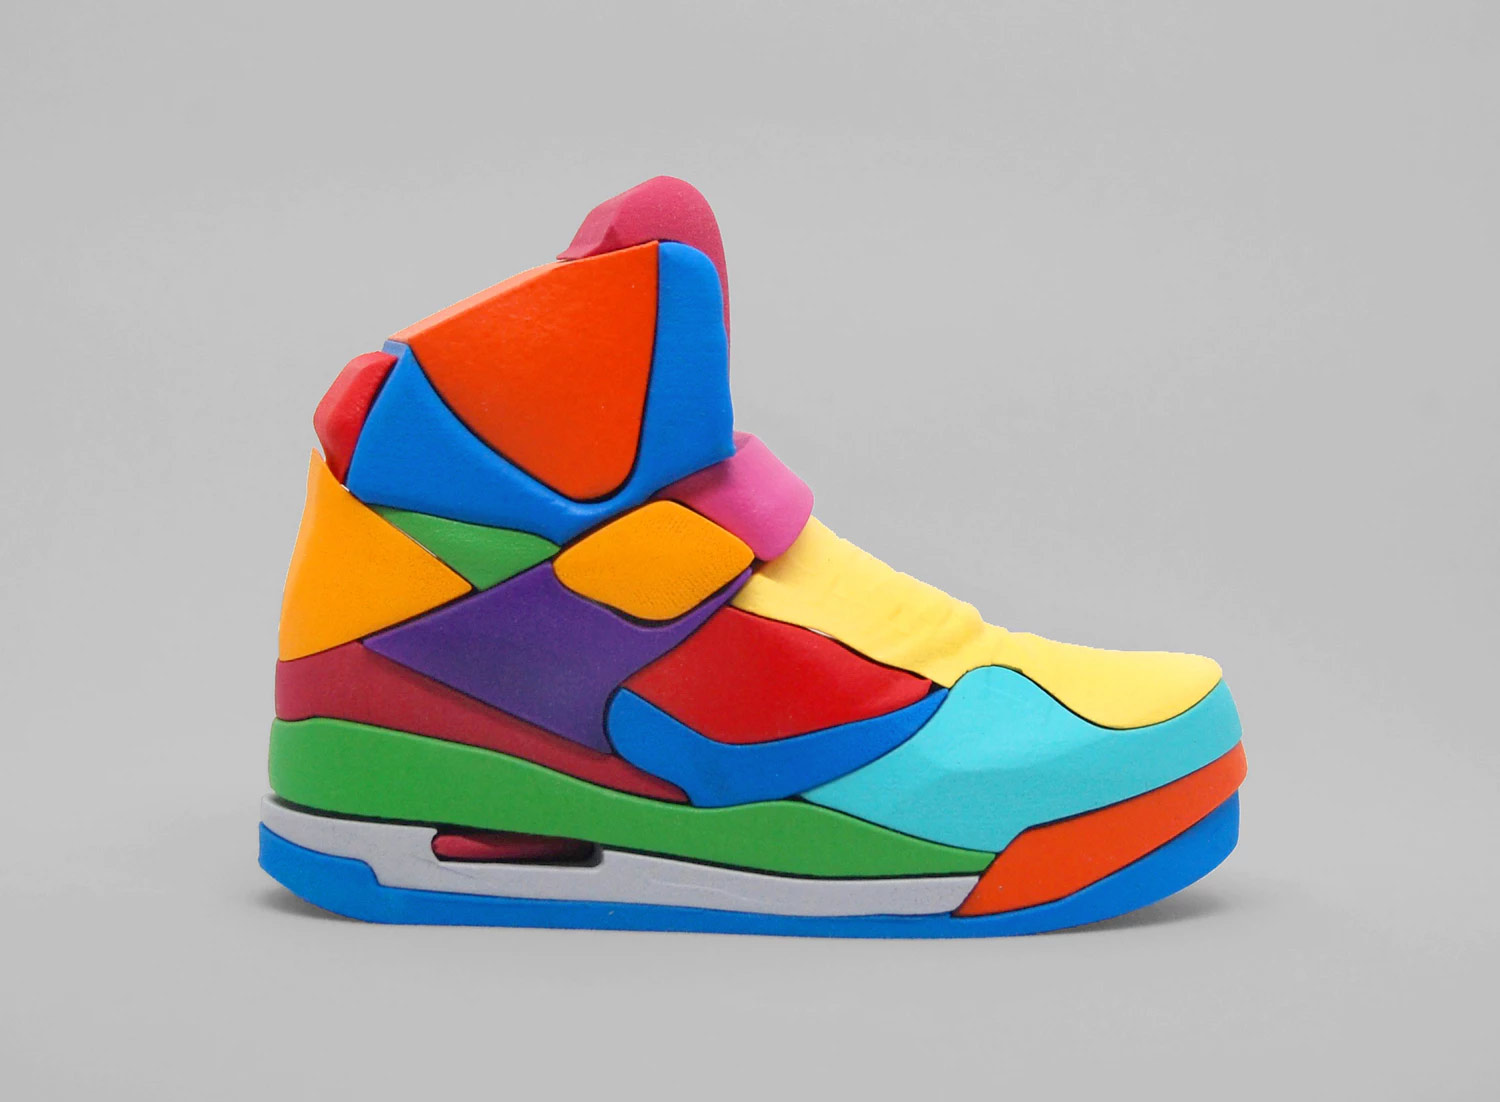 AIR JORDAN 45 HIGH 3D PUZZLE by Yoni Alter